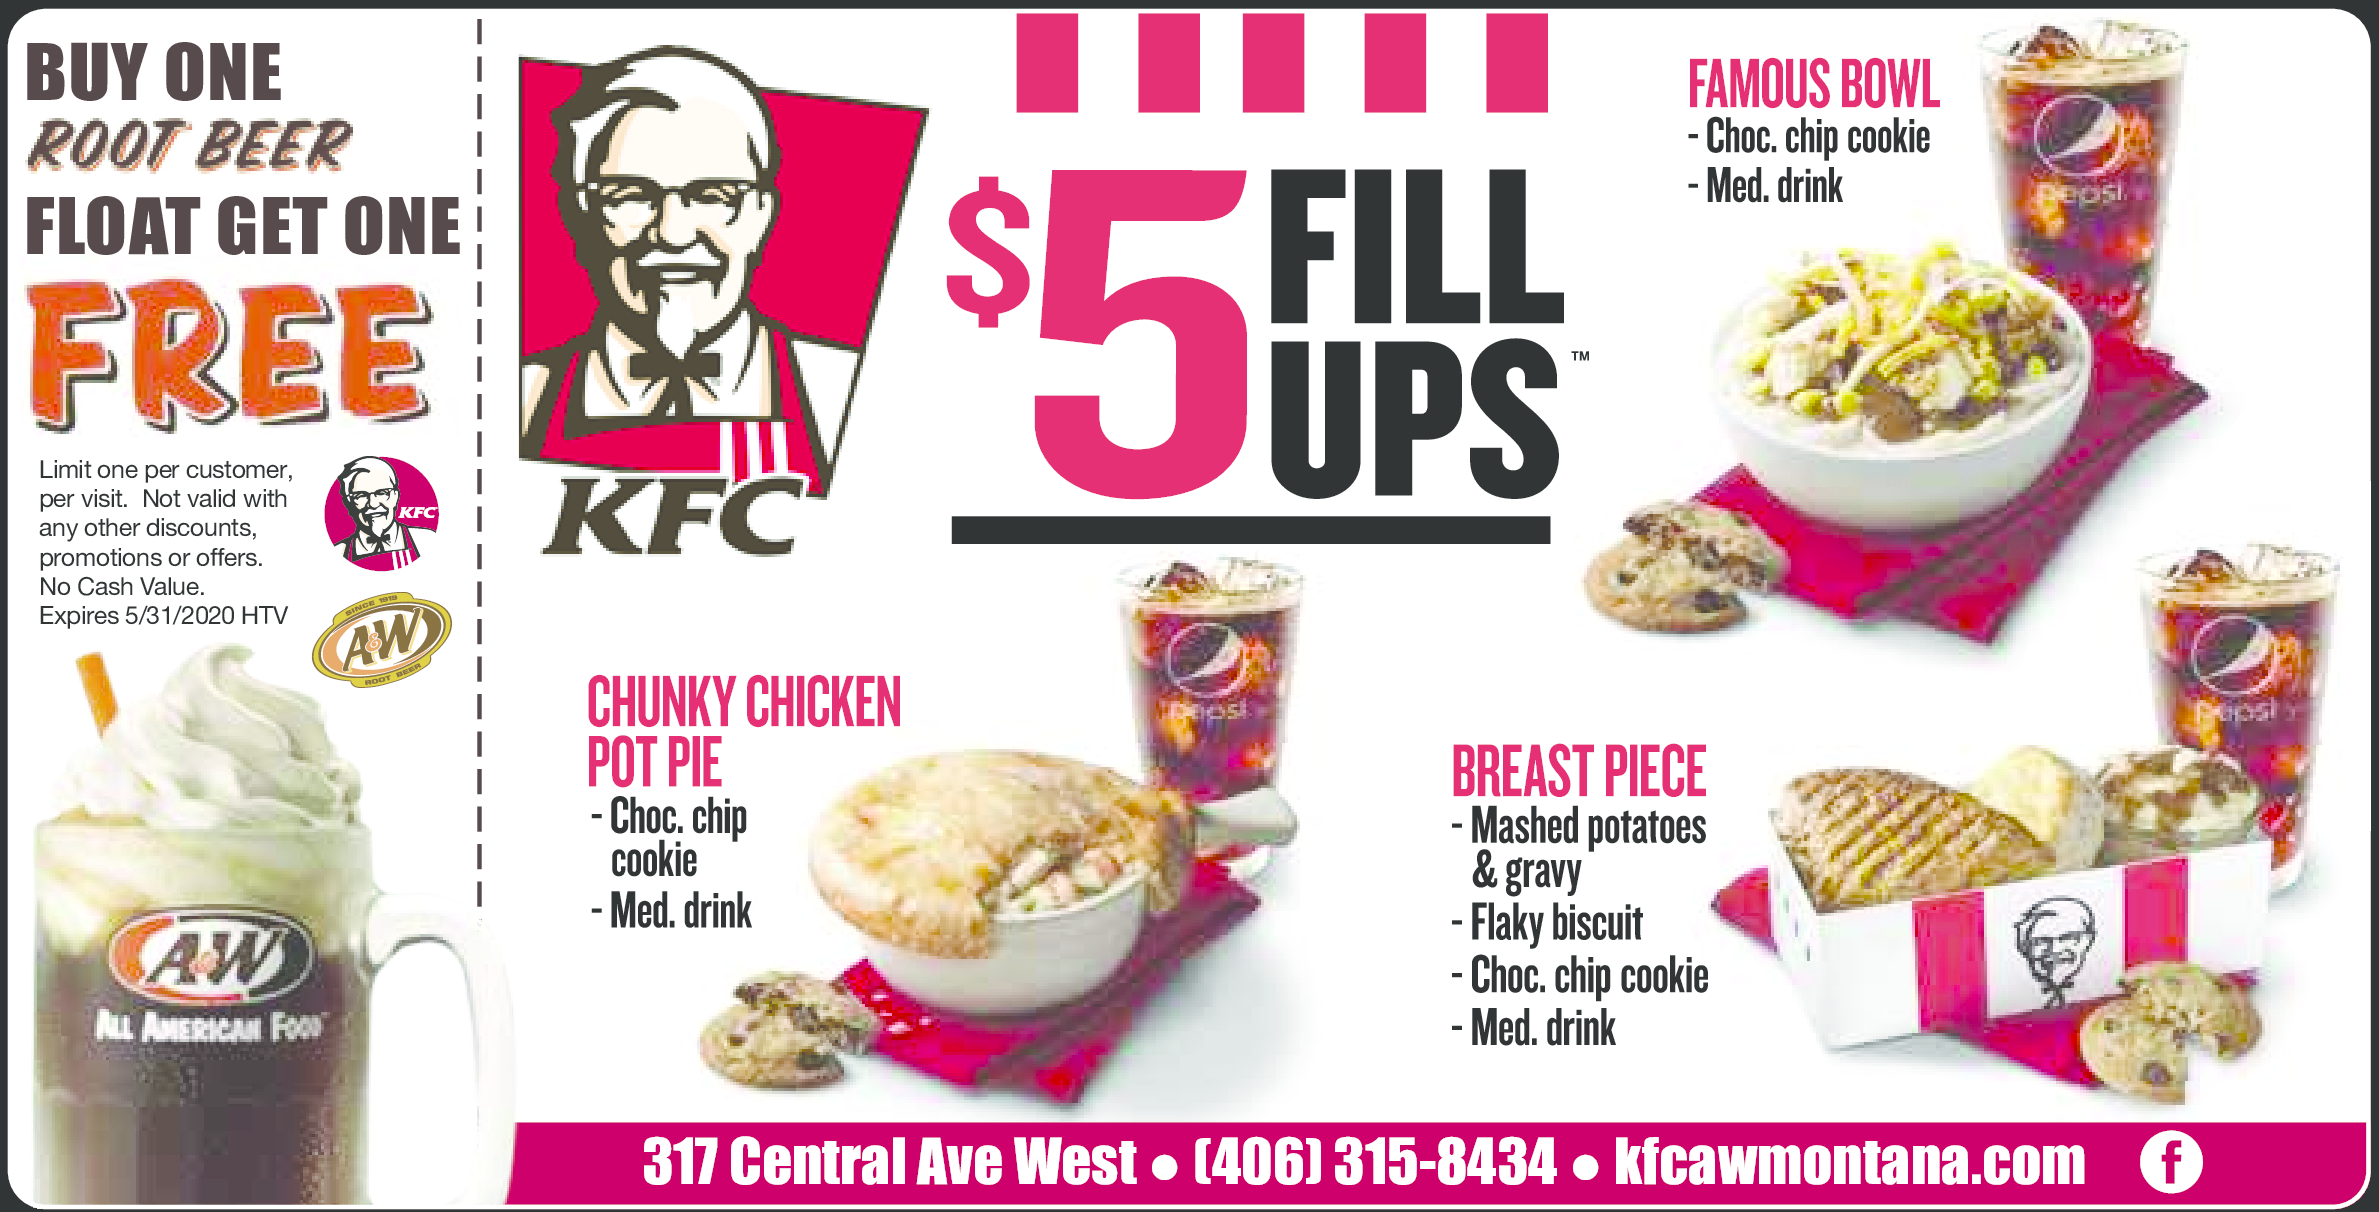 This is a picture of Tactueux Kfc Coupons 2020 Printable